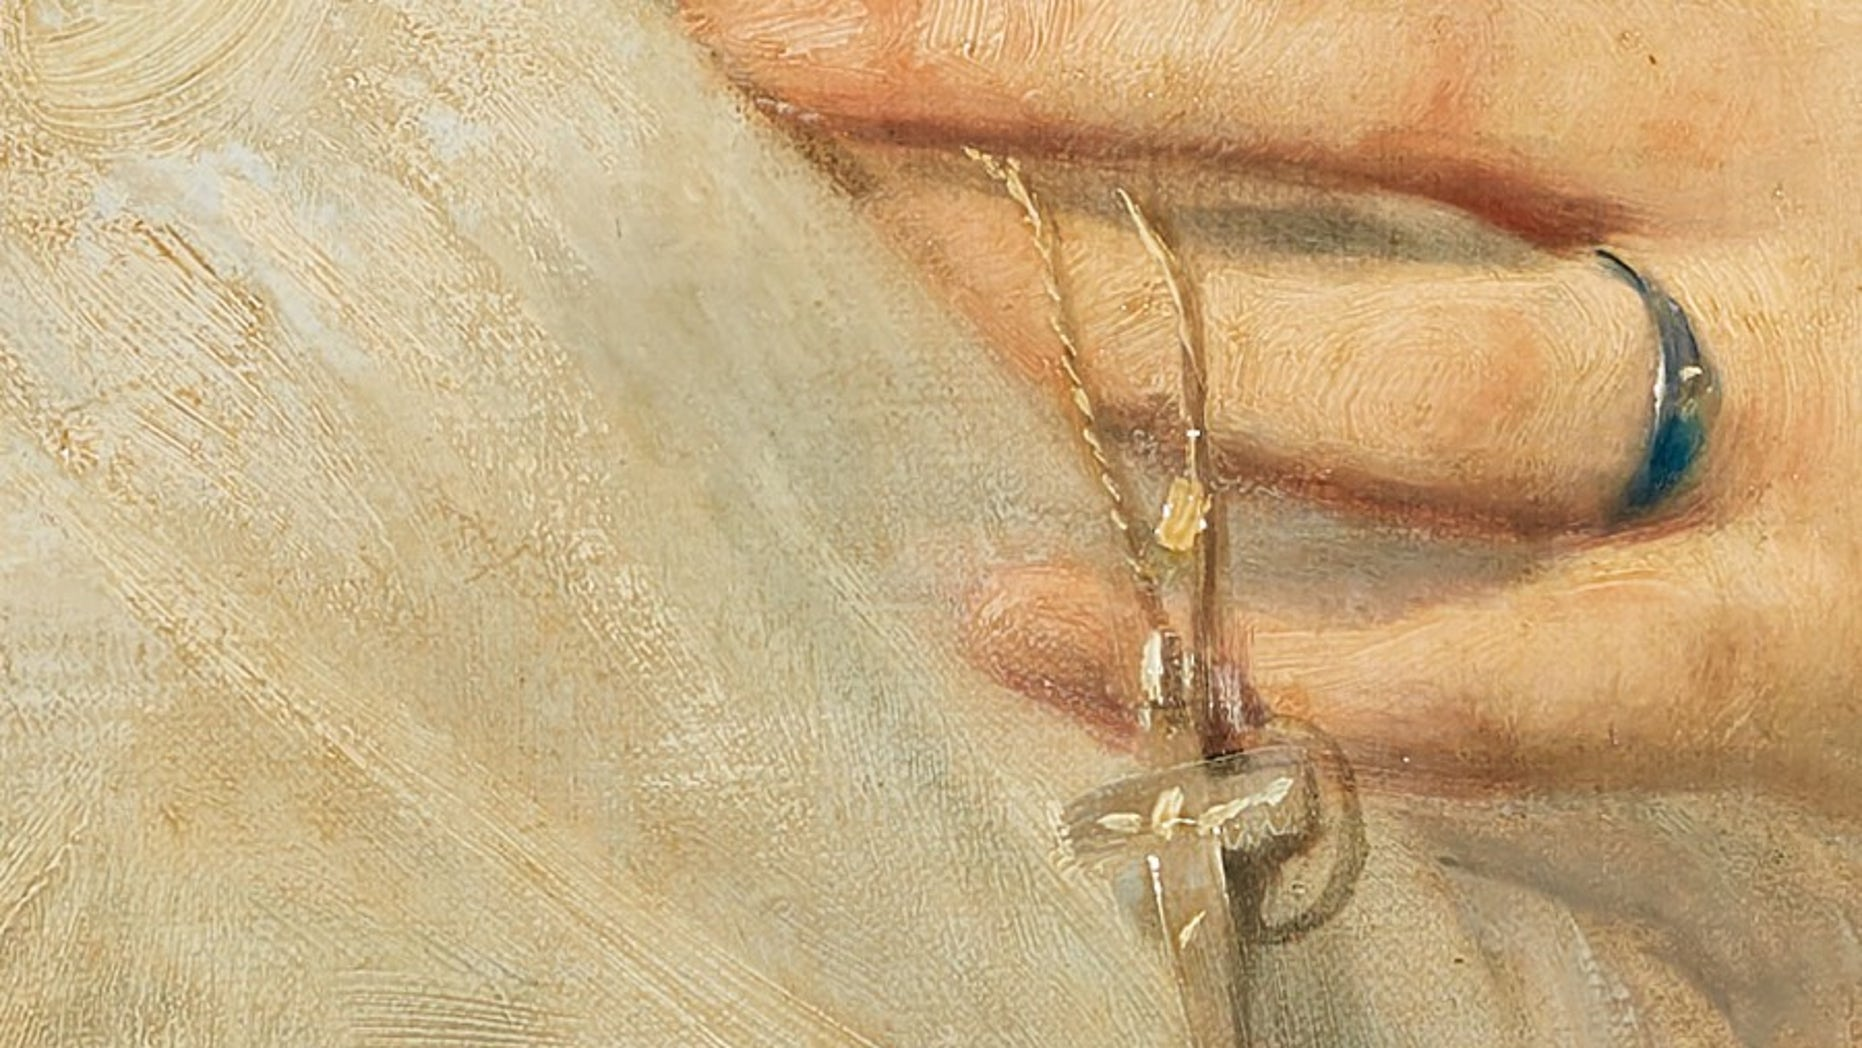 A tiny repaired hole on the painting revealed it to be the lost Thomas Couture artwork. A conservationist of that painting had made a note of the hole.